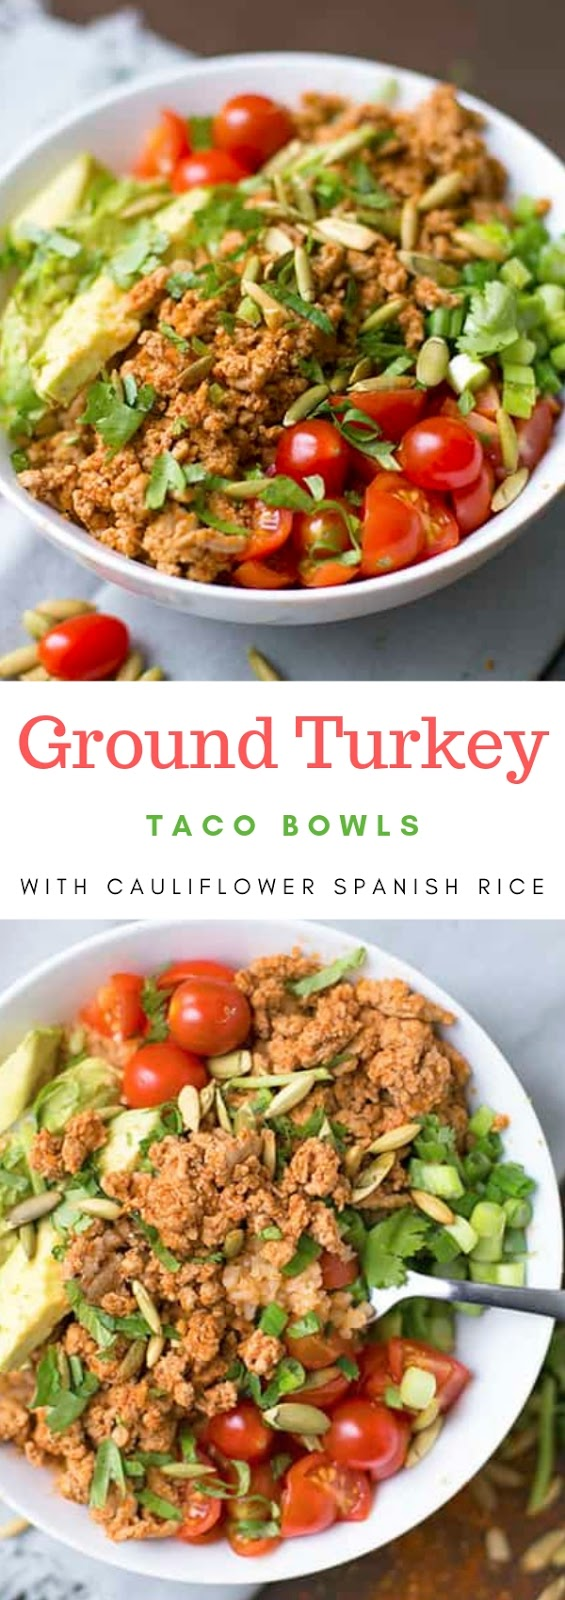 Ground Turkey Taco Bowls with Cauliflower Spanish Rice #turkey #taco #bowl #cauliflower #rice #lunch